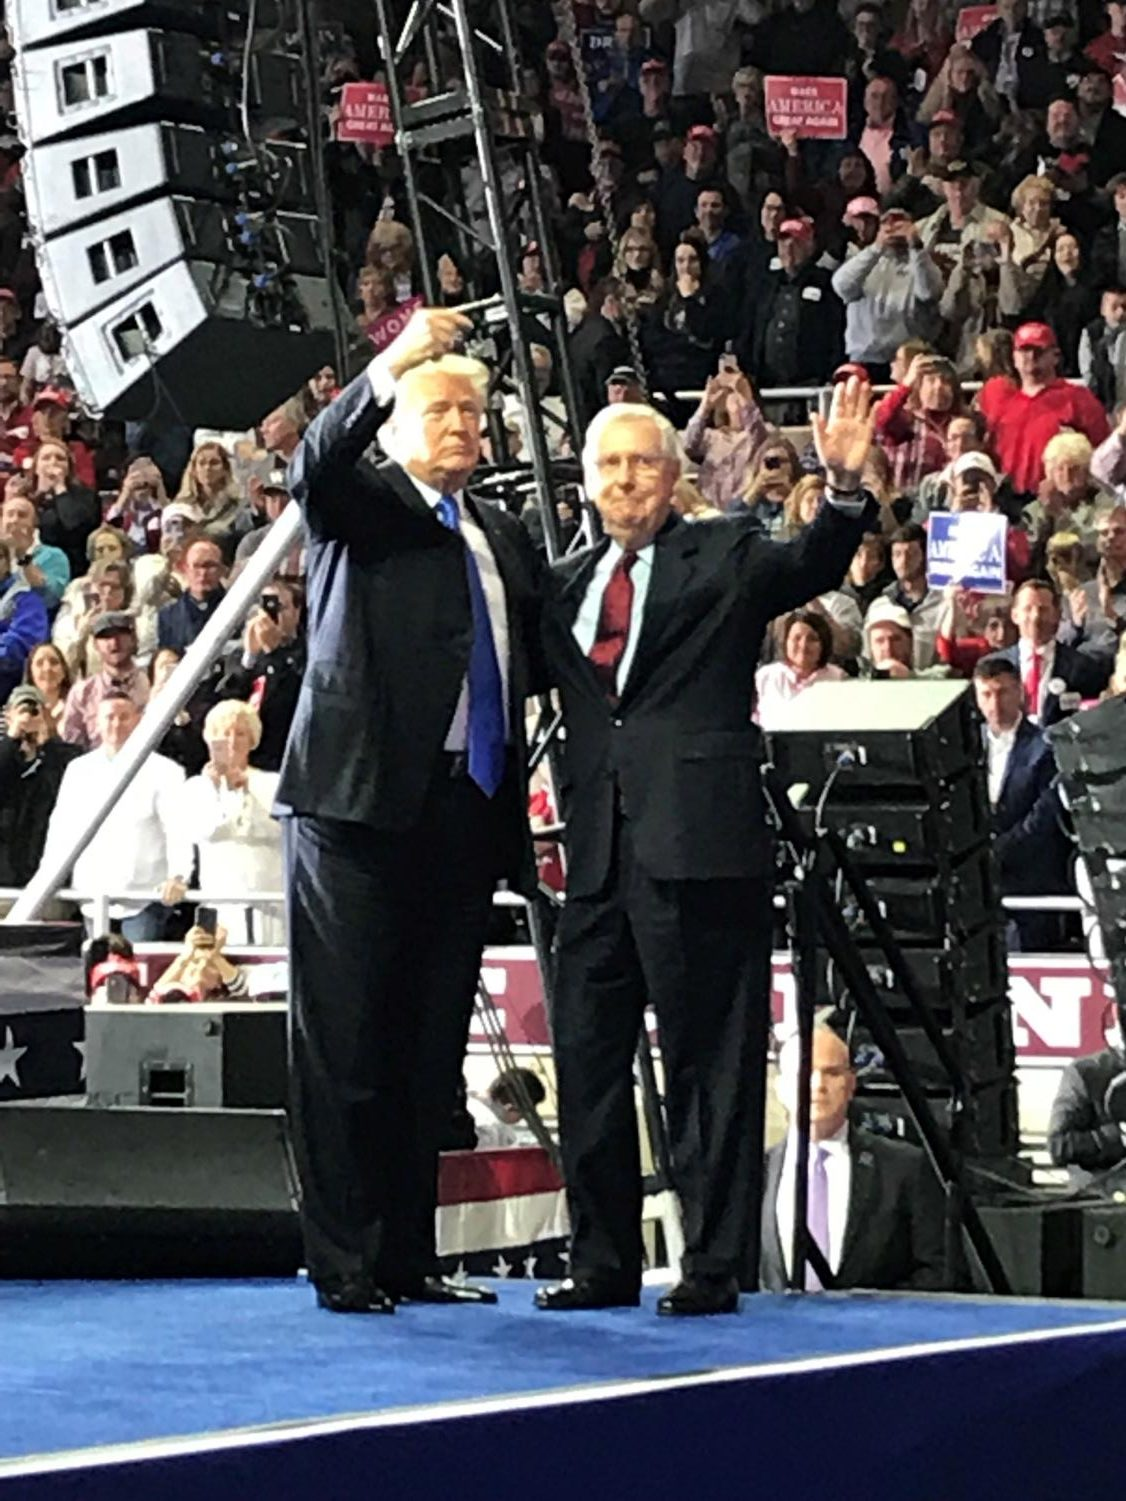 President Trump joins Senator McConnell at a rally in Richmond, Kentucky.